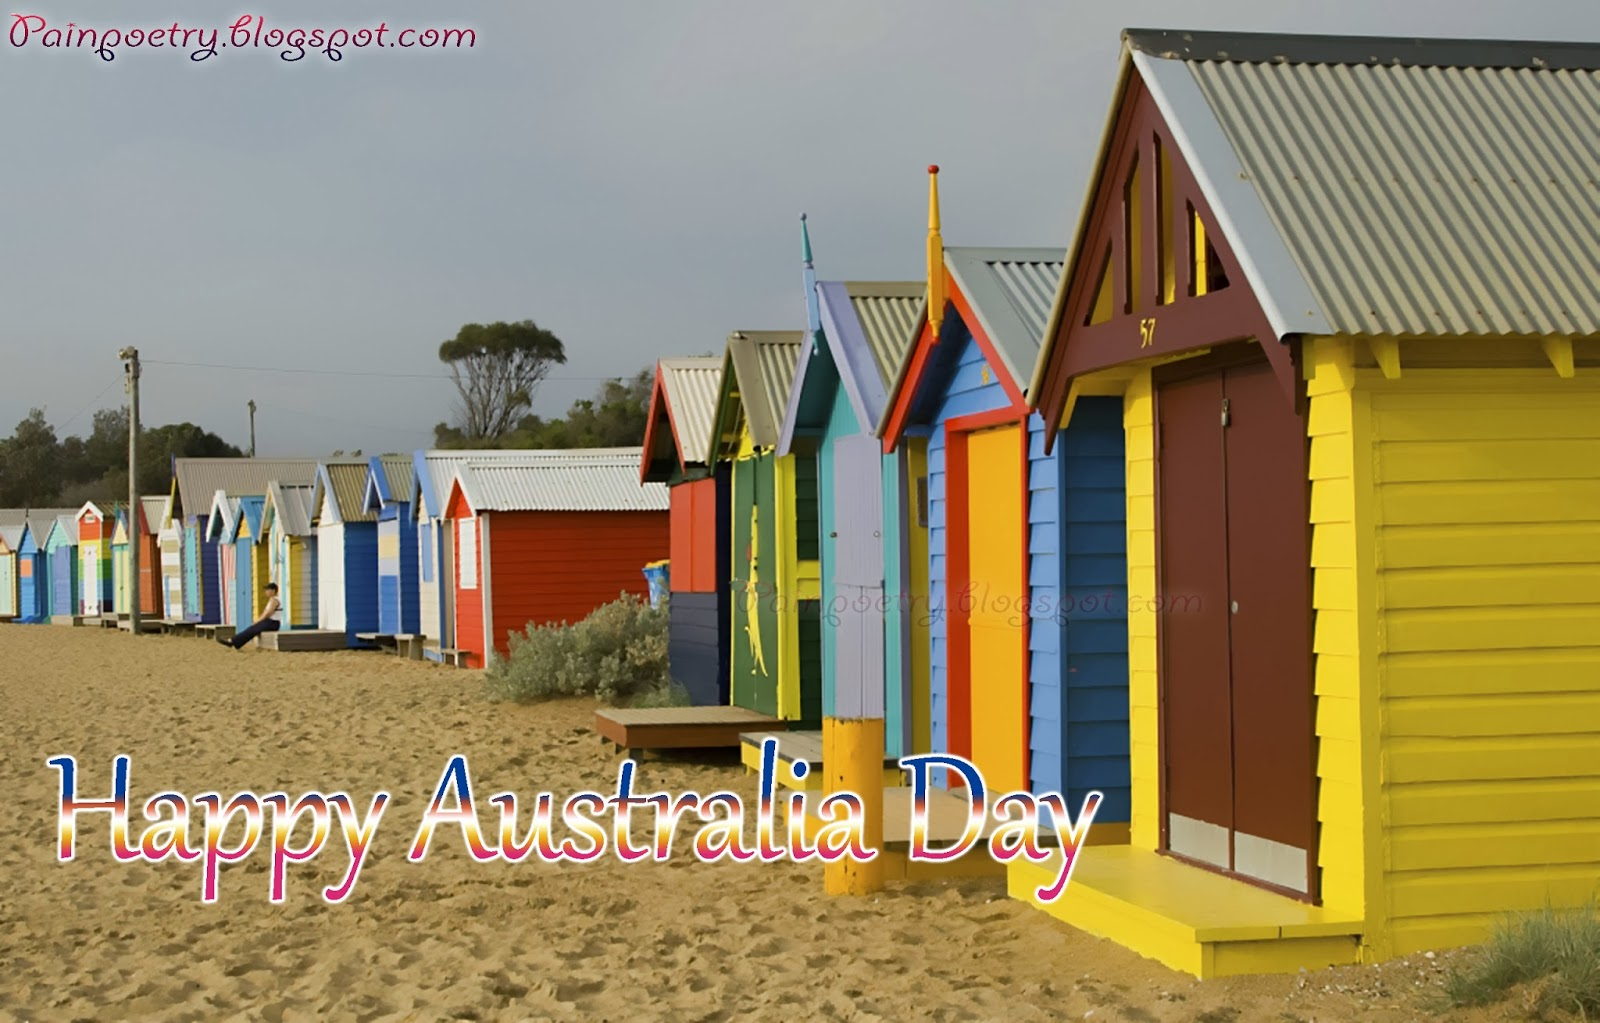 Happy-Australia-Day-Huts-On-Beach-Celebration-Of-26-January-Image-HD